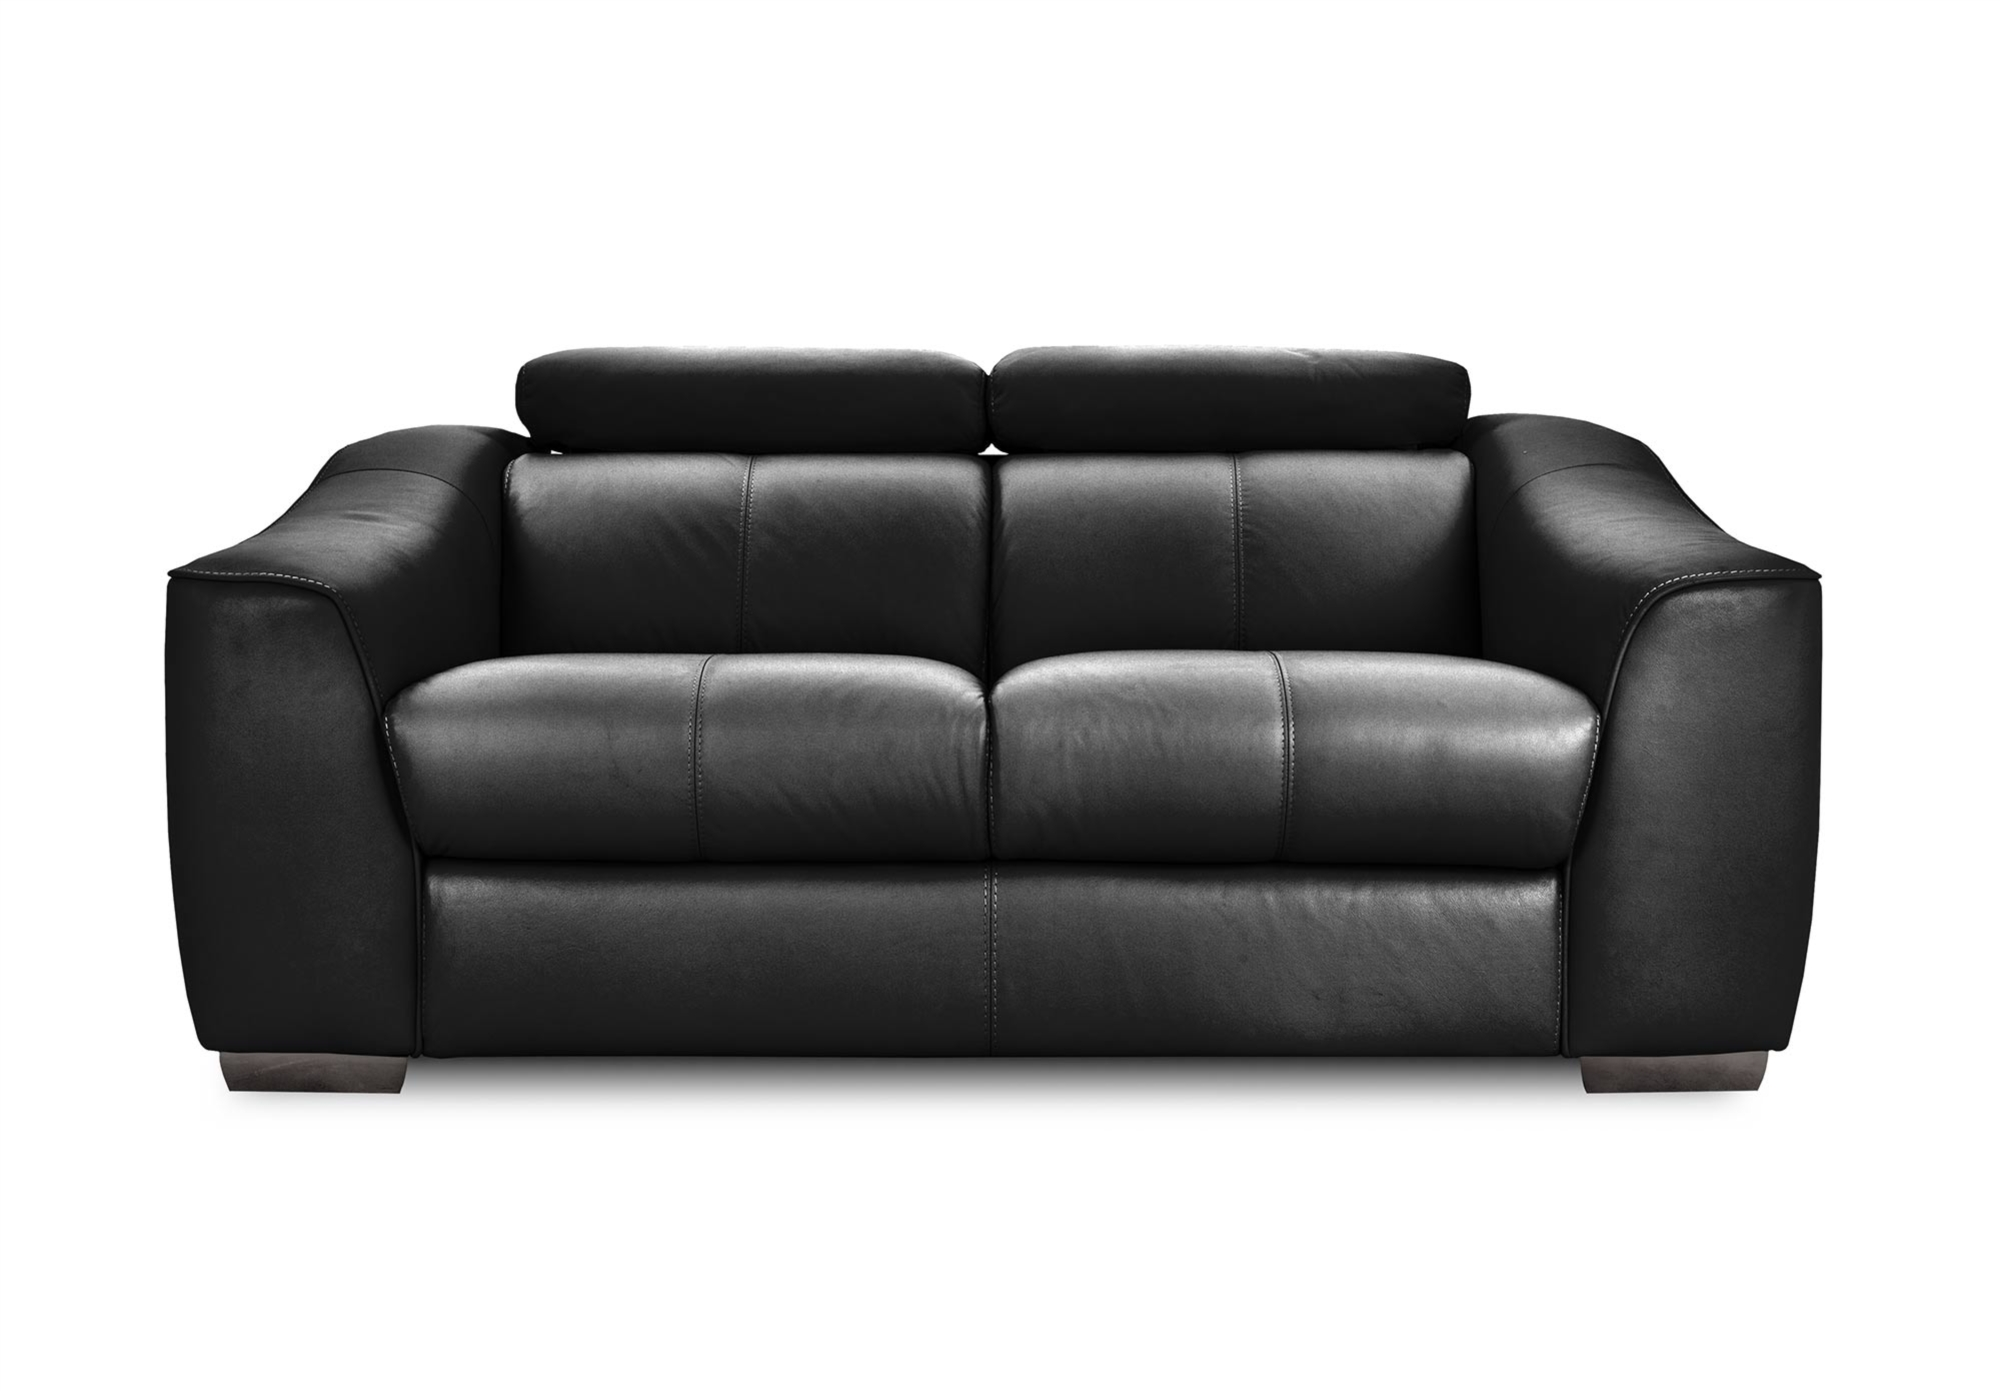 Domicil Sofa Review Modern Style Home